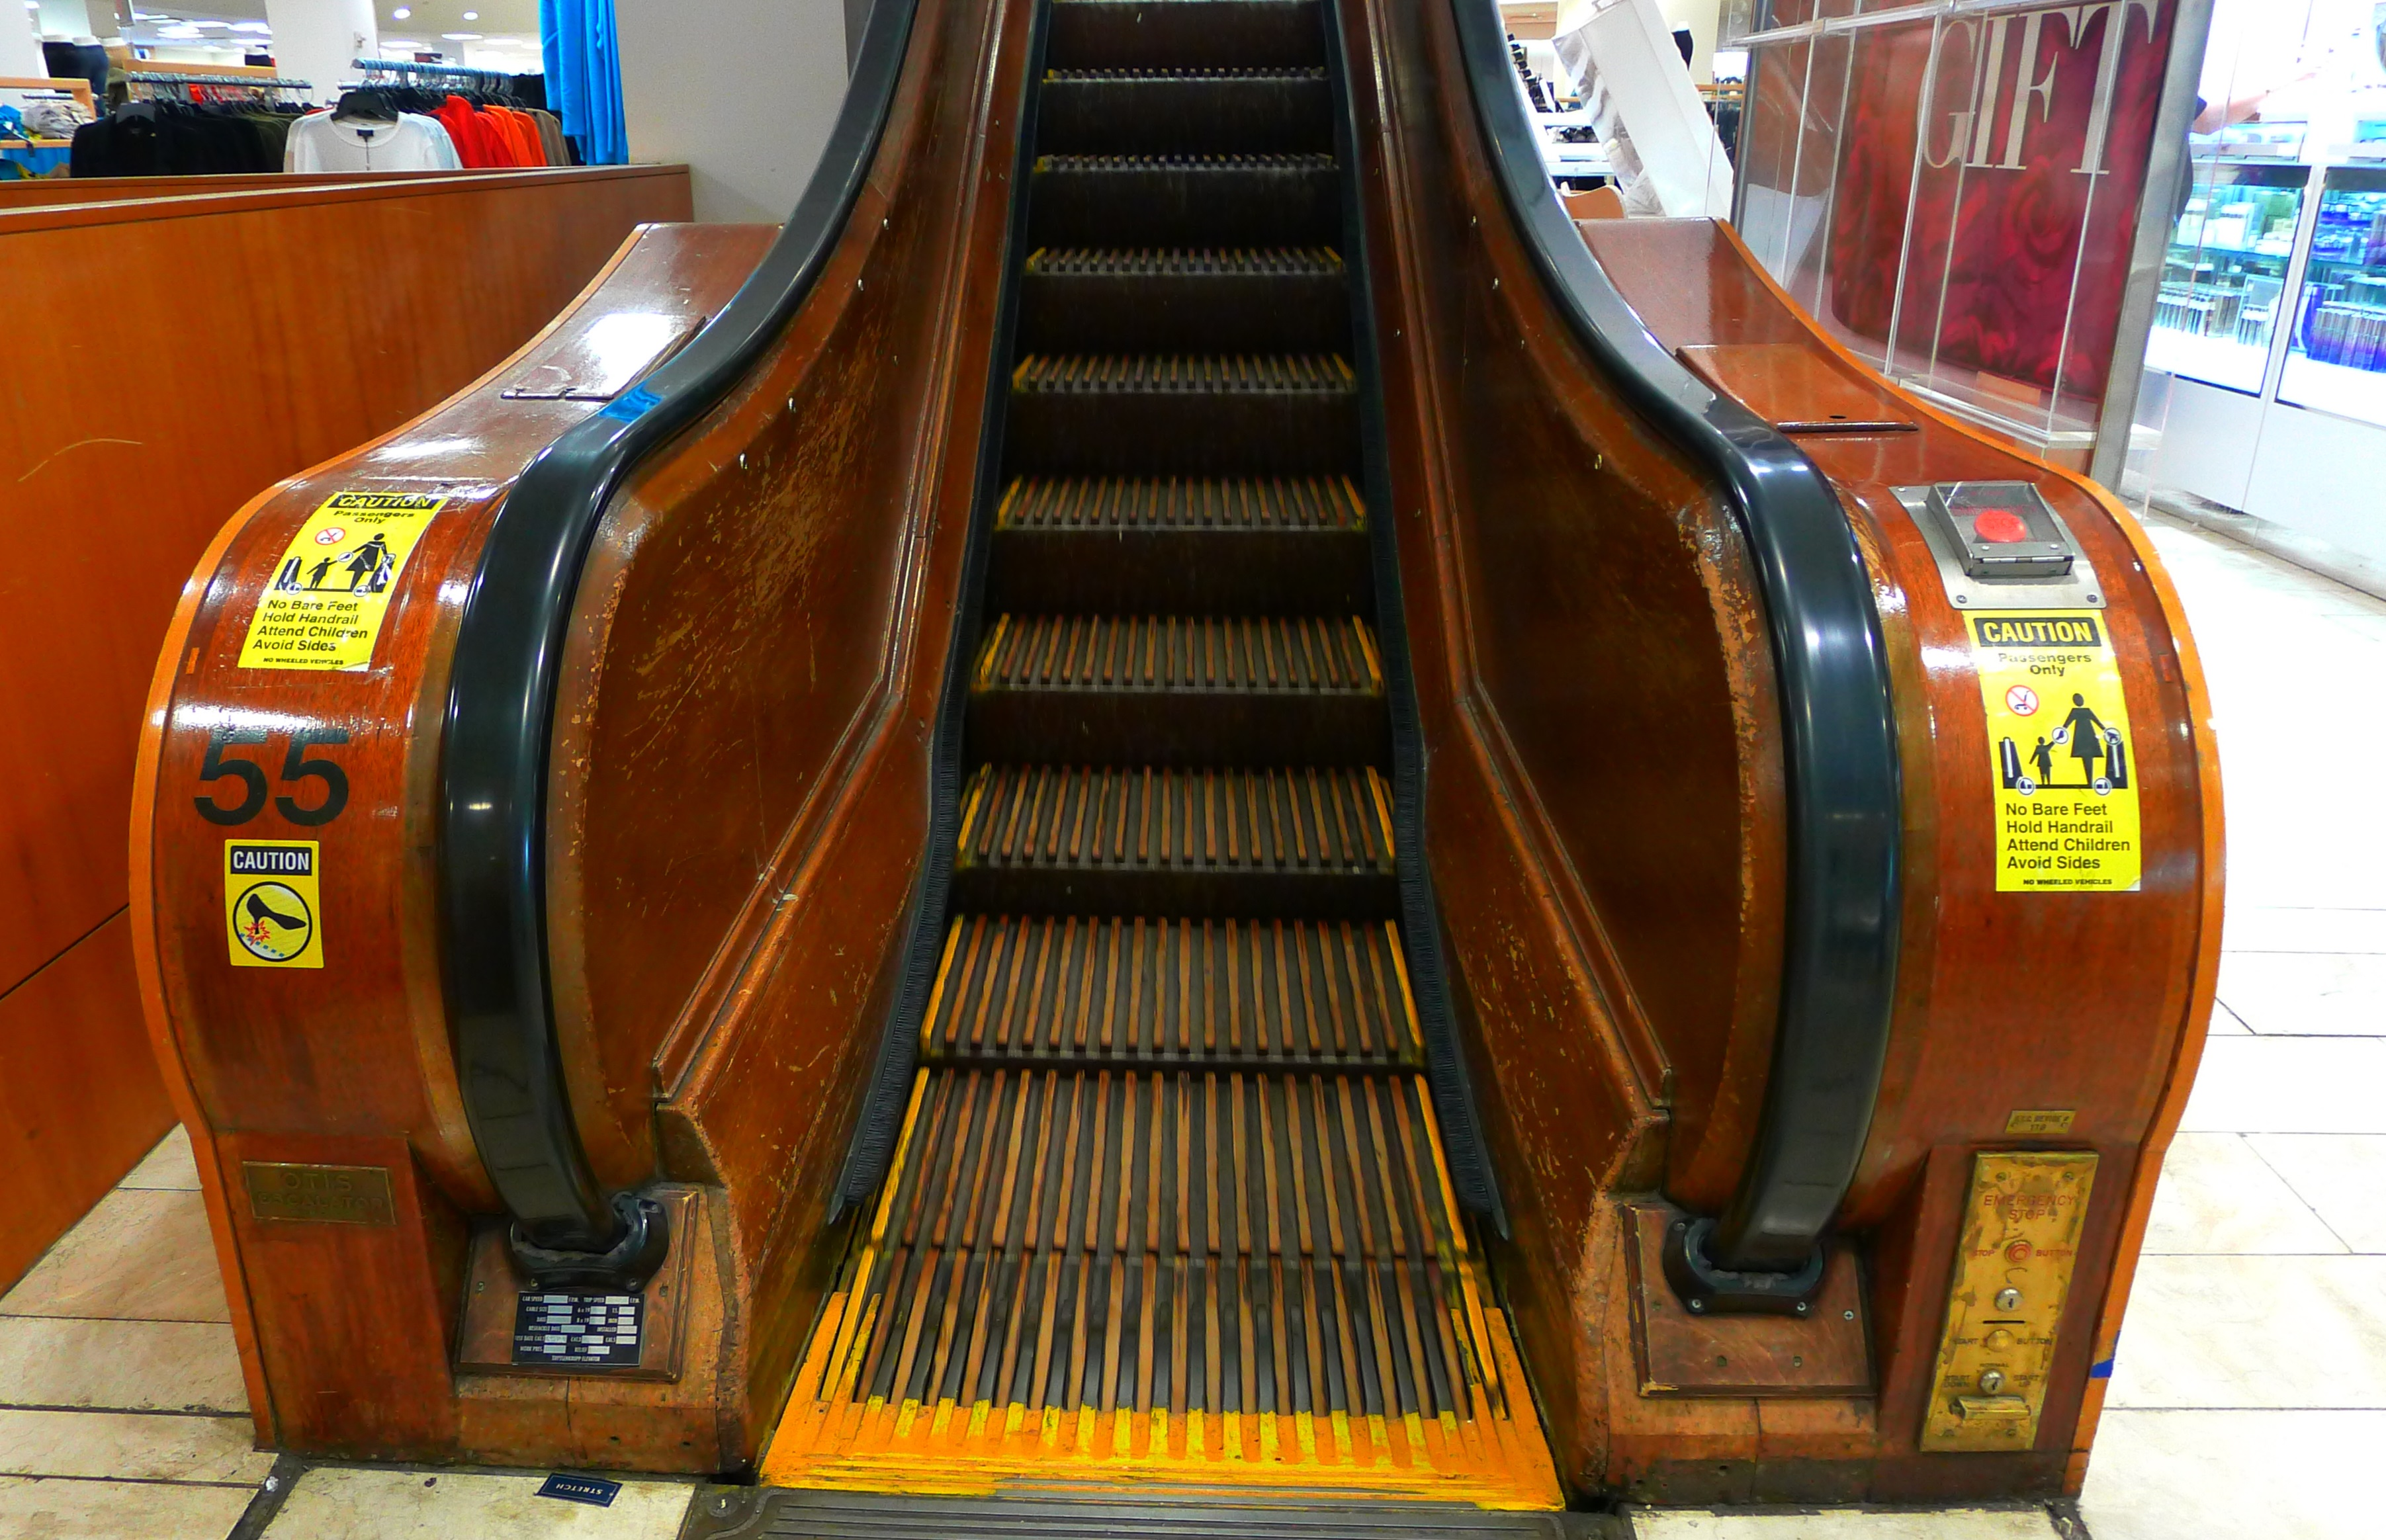 ...but some of the original escalators remain